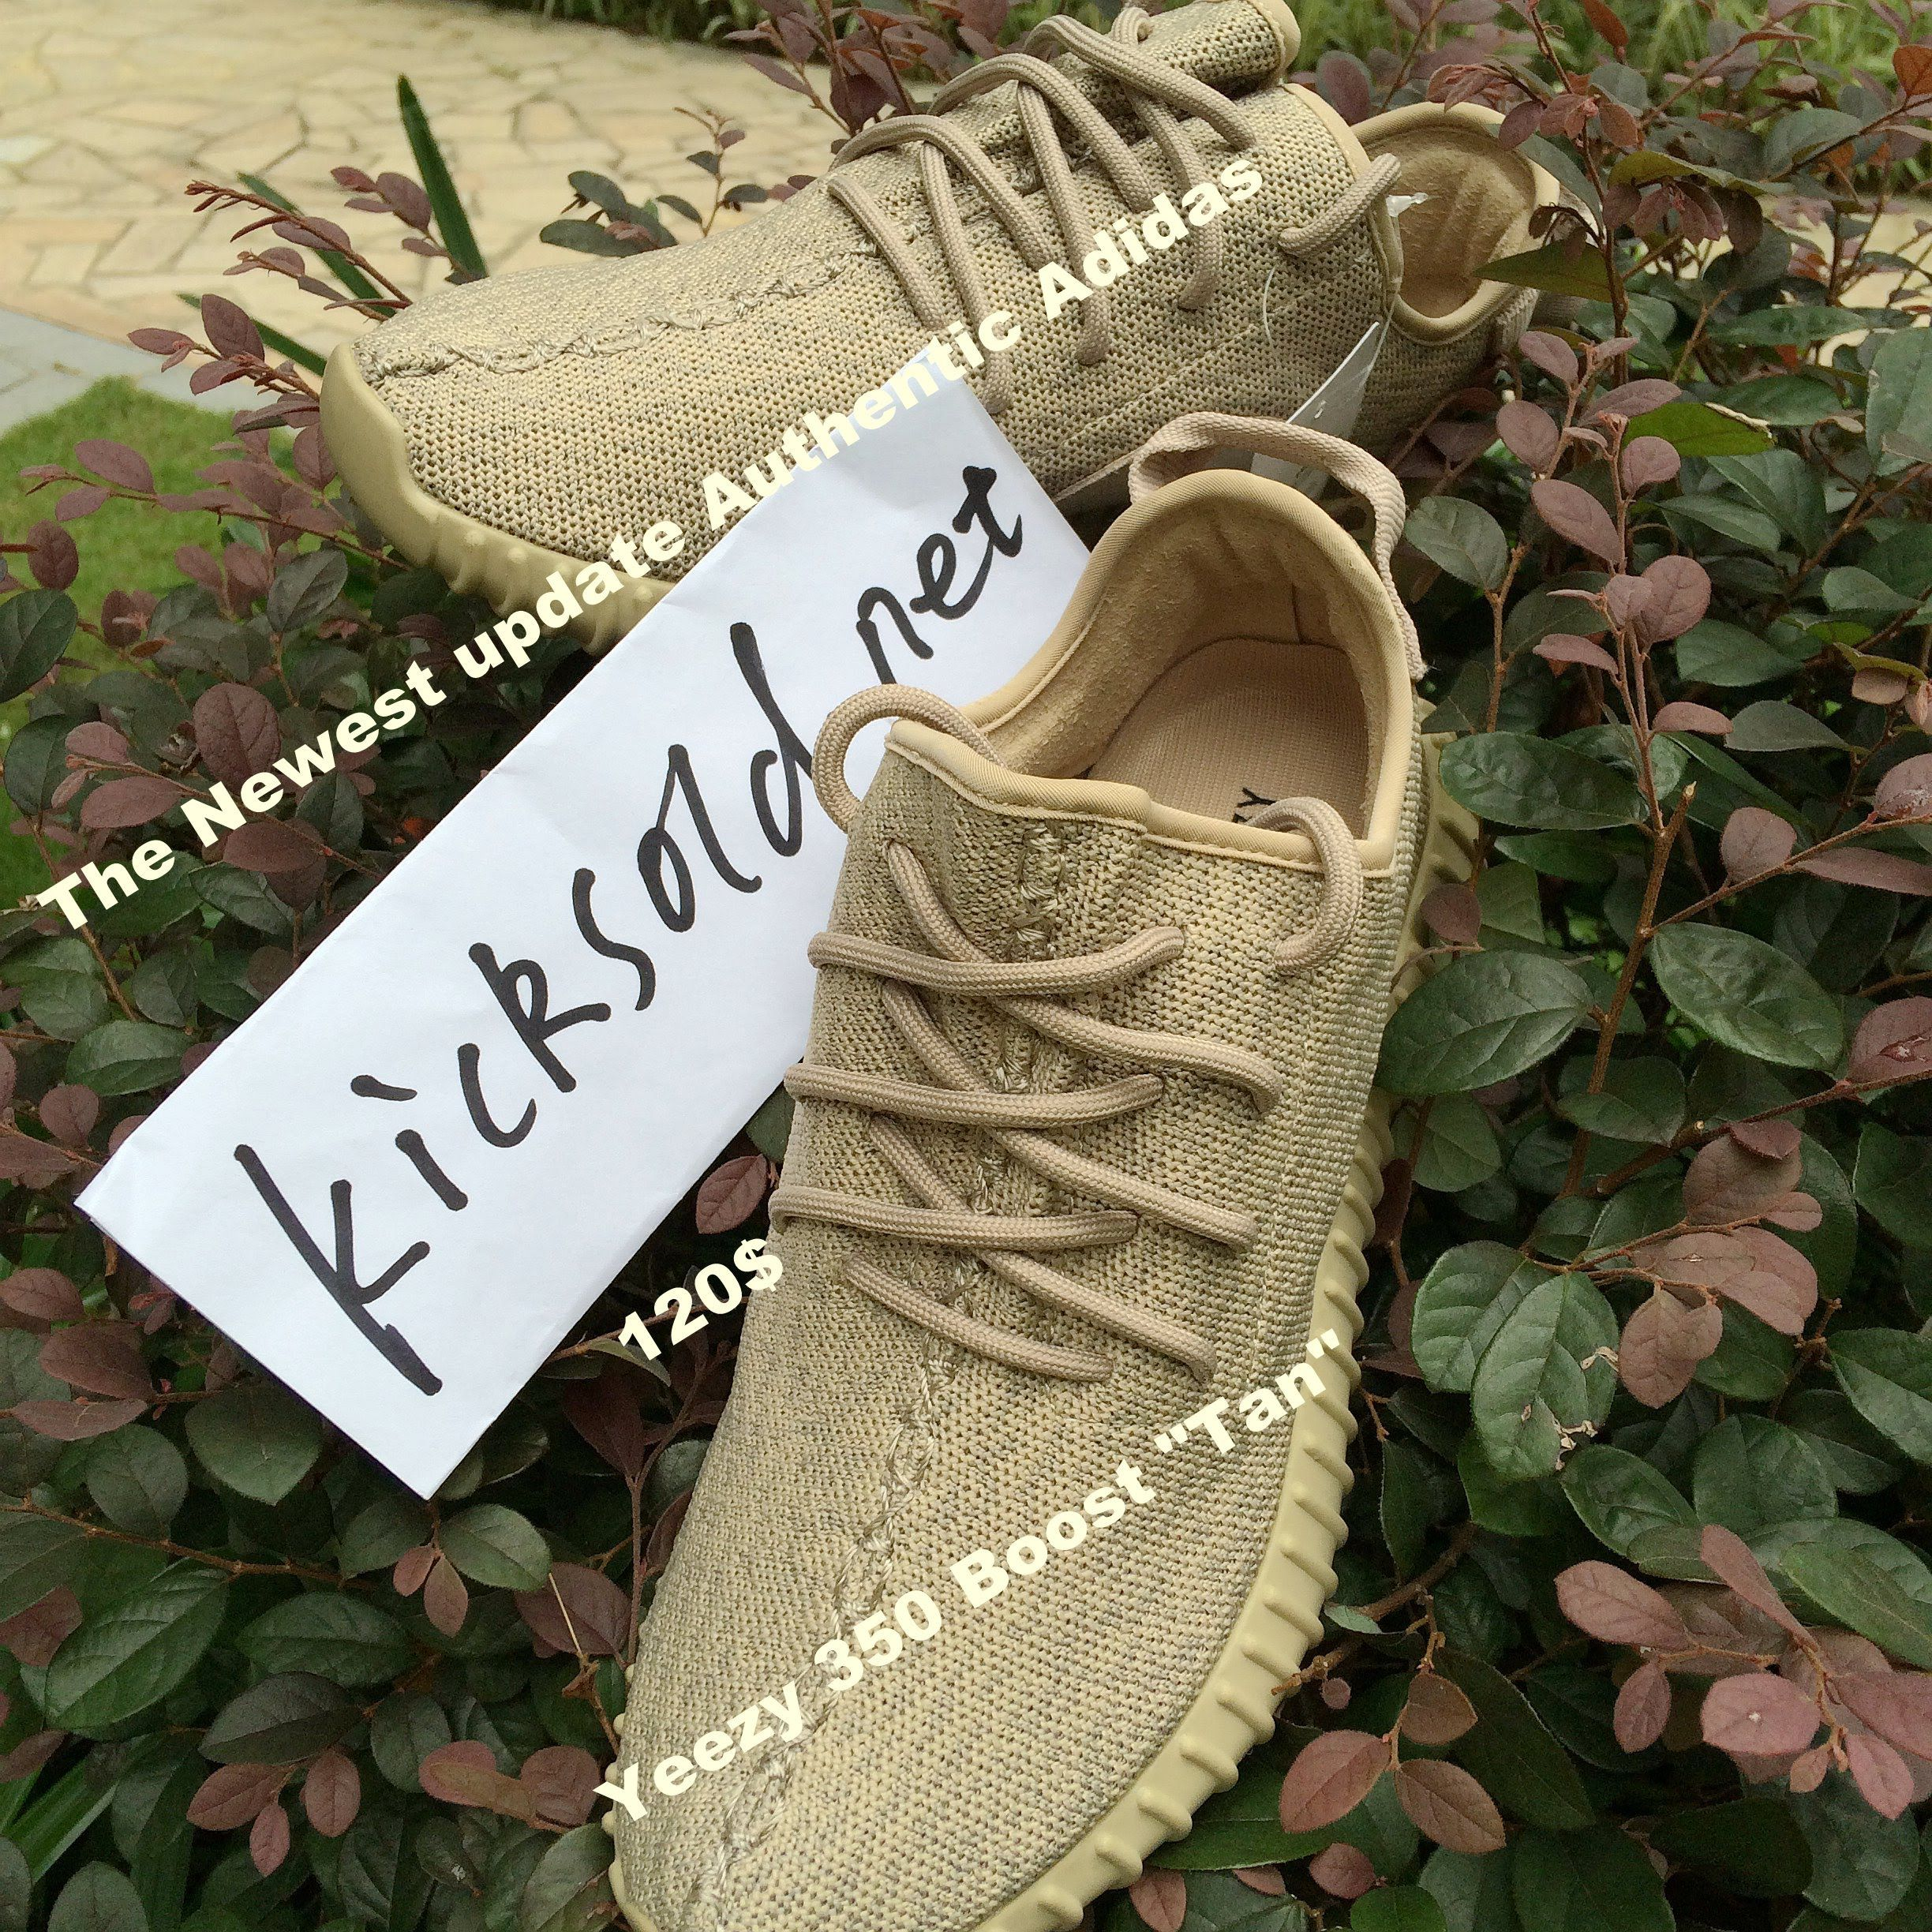 91f83547f5f35 The Newest update Authentic Adidas Yeezy 350 Boost